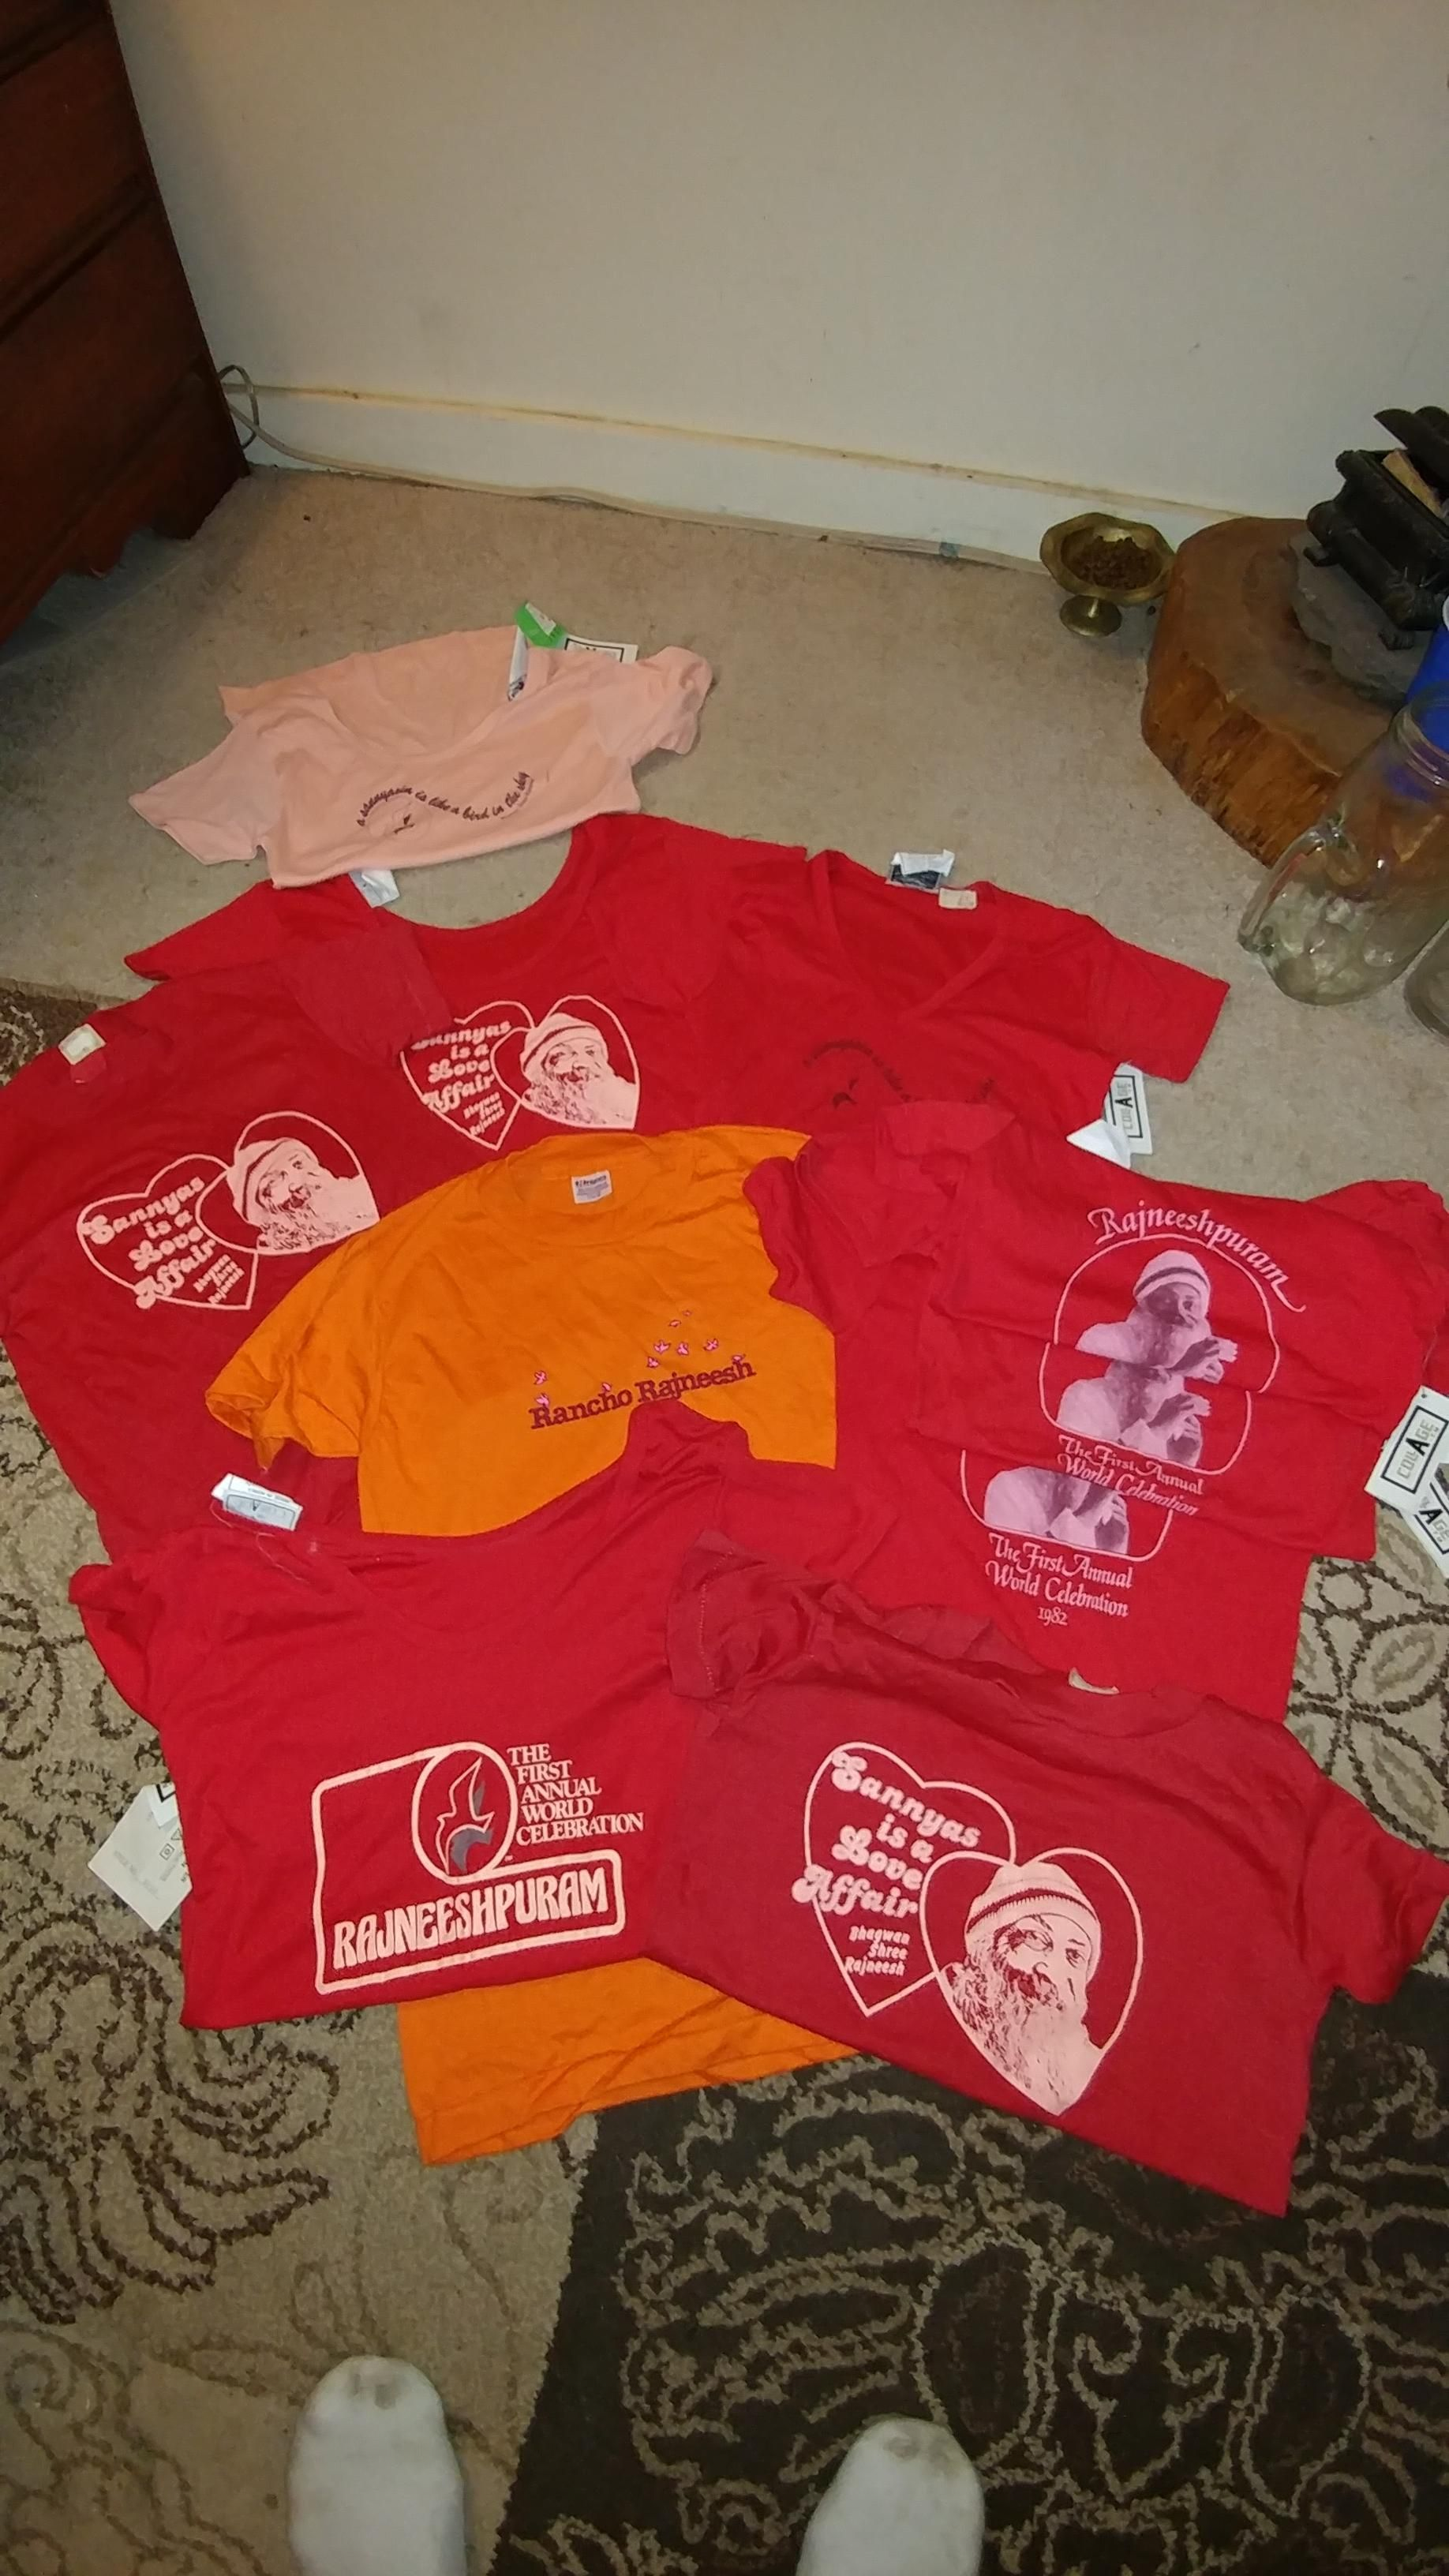 rancho rajneesh anybody? some old ass shirts from a weird ass oregon